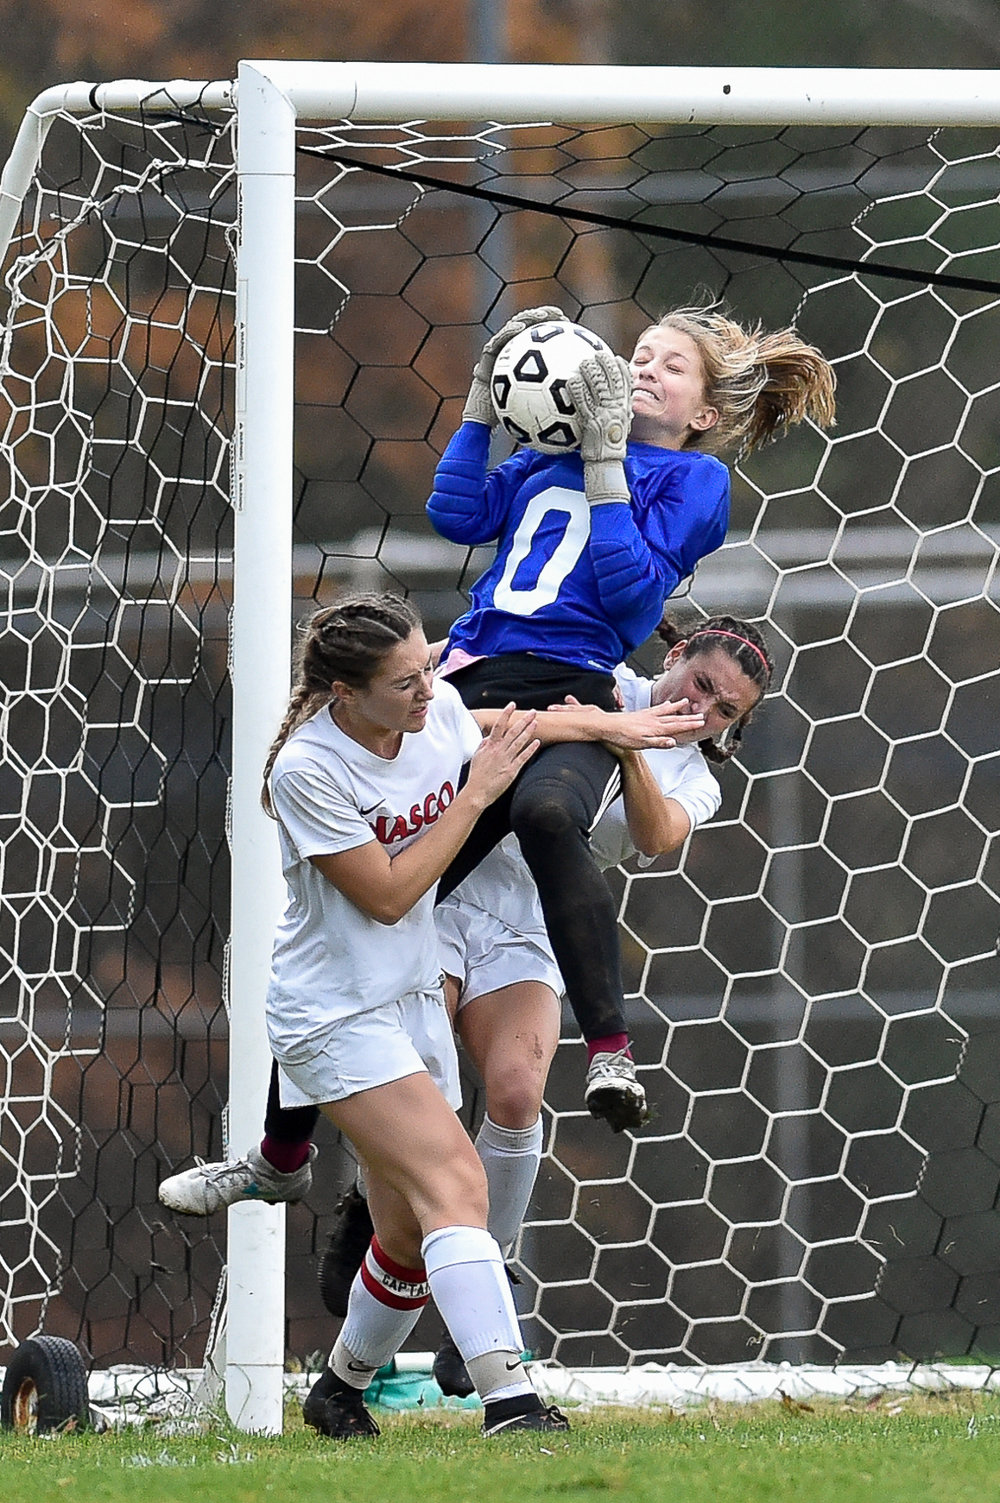 Arlington goal keeper Claire Ewen makes this save as she gets tangled up with Regan Pratt and Olivia Bonacorso of Masconomet during their 2-0 MIAA North Division 2 game win at Masconomet High School, Monday, Nov. 6, 2017. [Wicked Local Staff Photo / David Sokol]